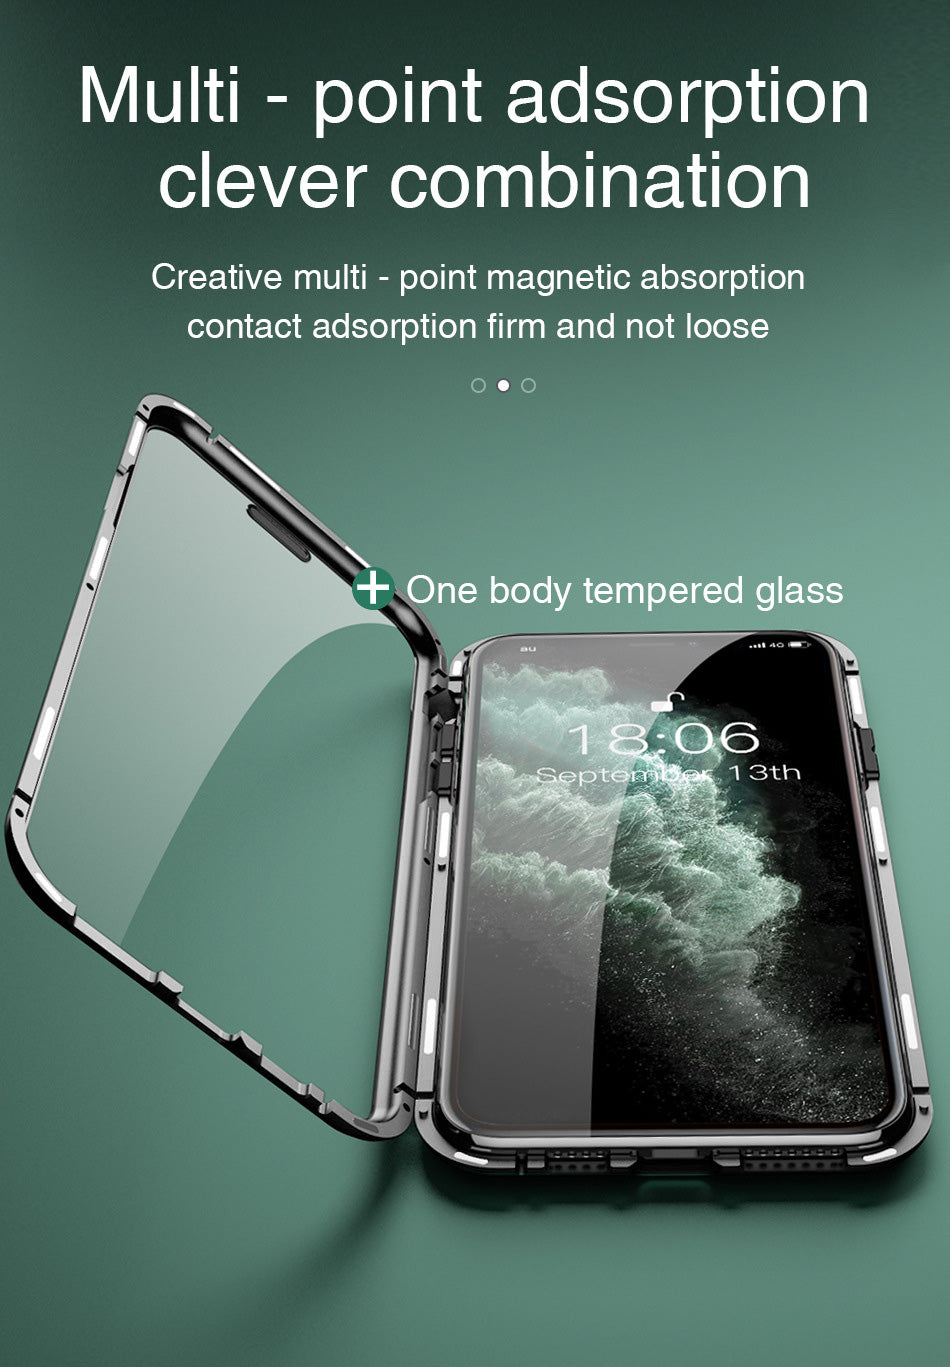 360 Metal Frame Double Sided Glass Magnetic Case for iPhone 12 Pro Max XR XS MAX 11 8 7 6 6s Plus Full Protection Tempered Glass Phone Cover for iPhone 12 7 8